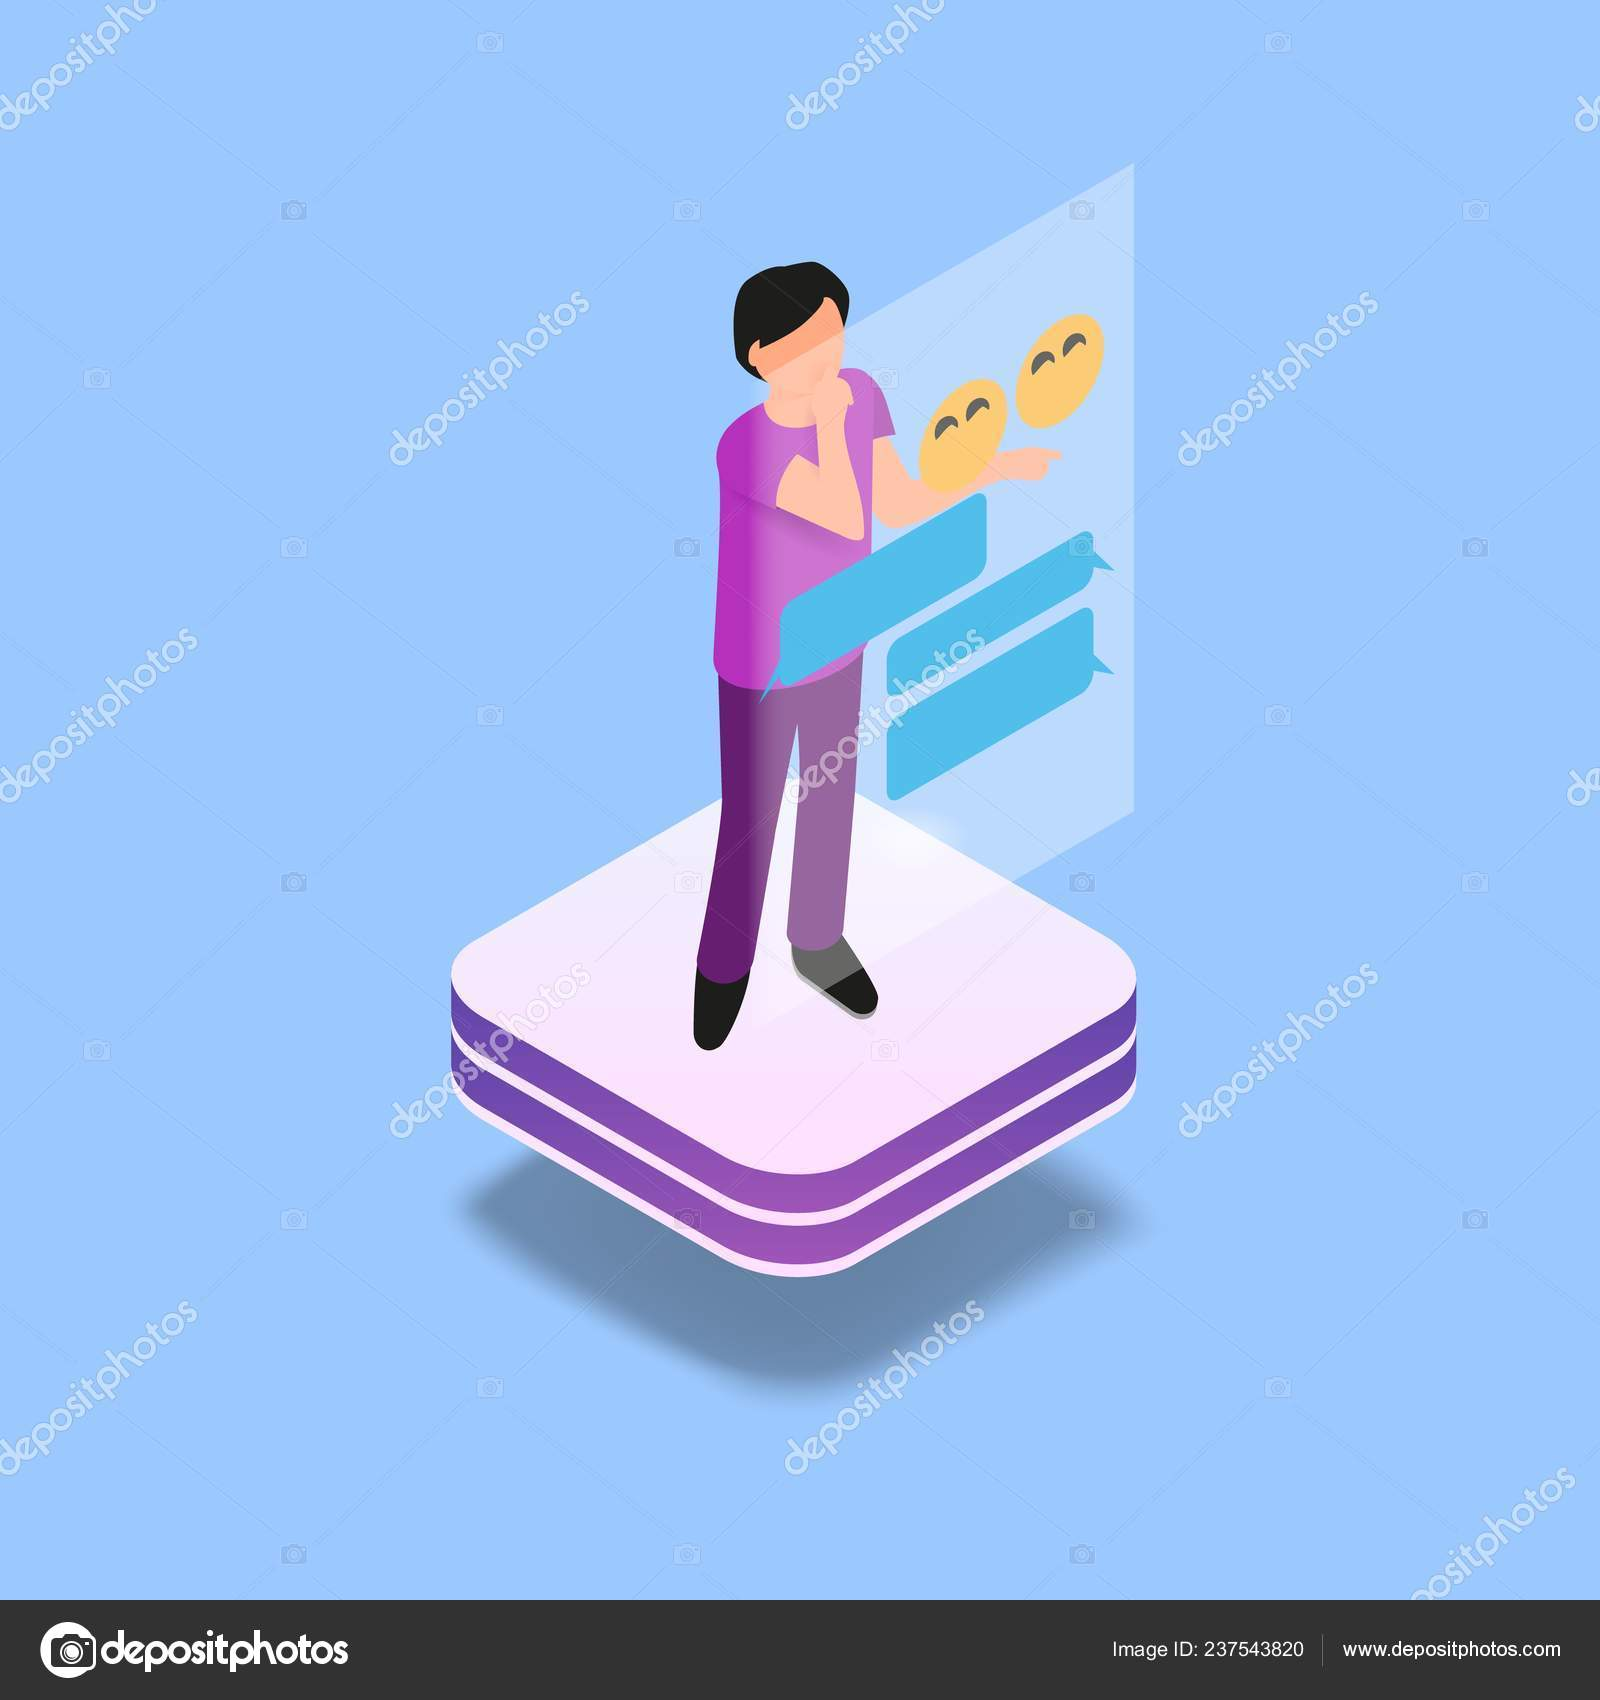 Isometric Image Gaming Virtual Reality Vector Illustration